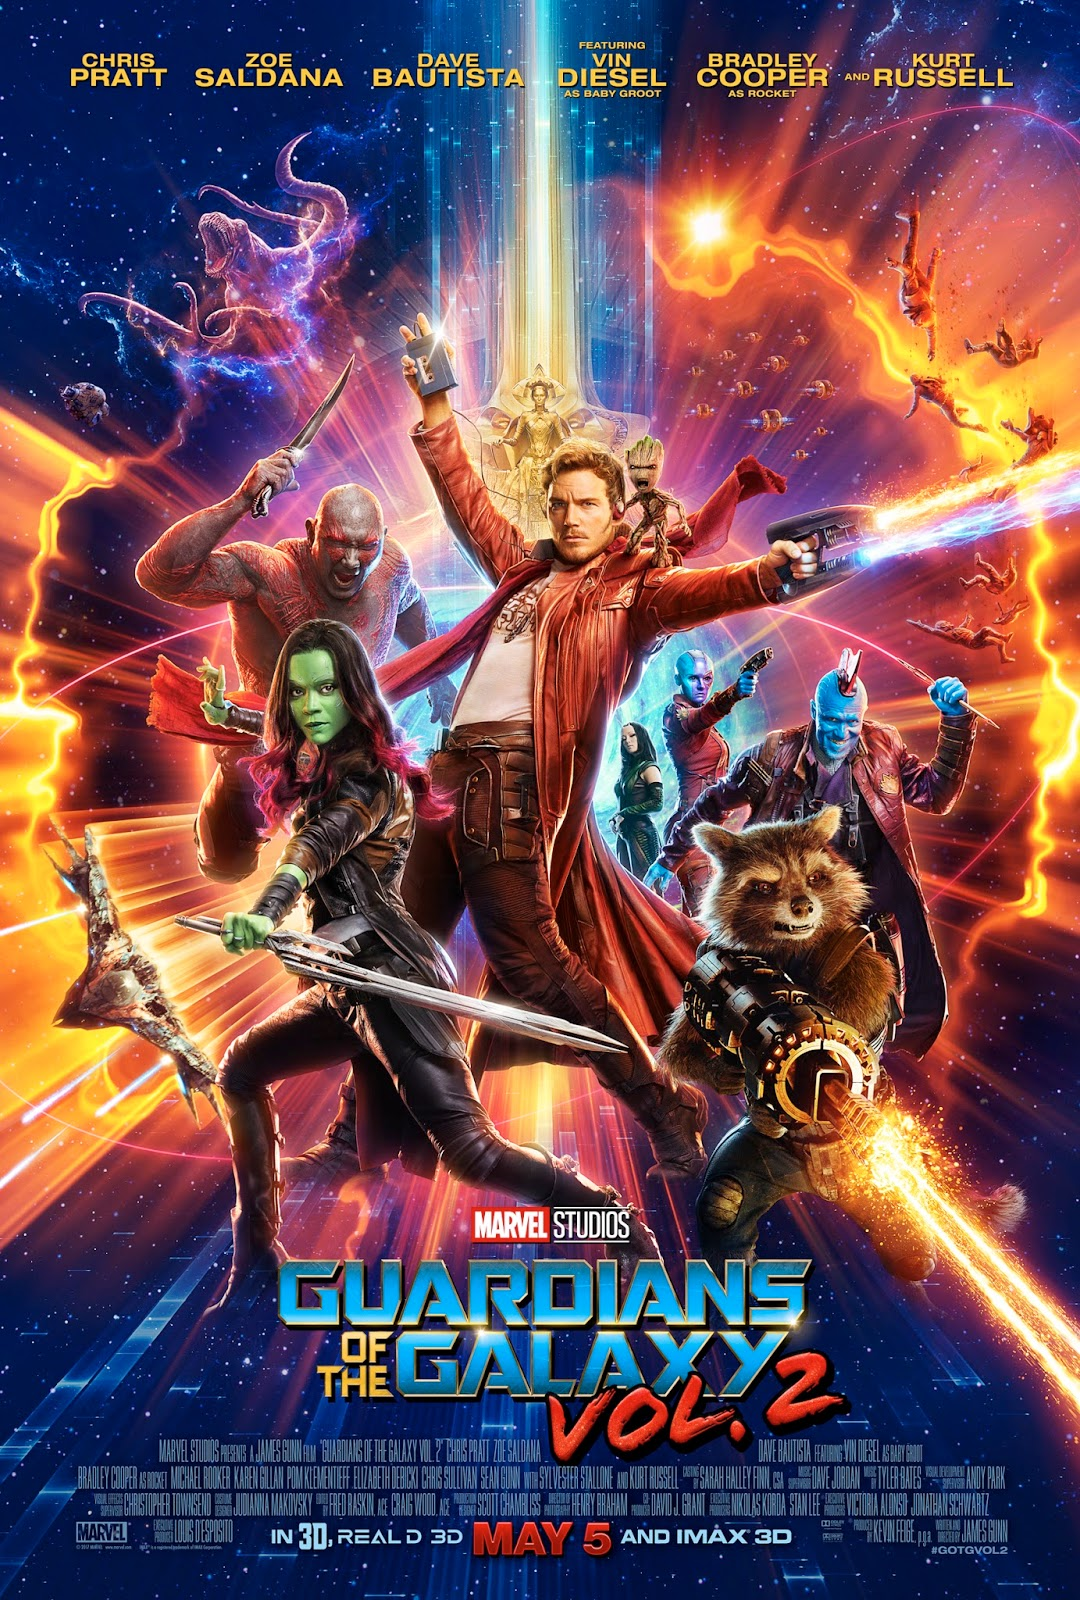 Guardians of the Galaxy Vol. 2 (2017) ταινιες online seires oipeirates greek subs